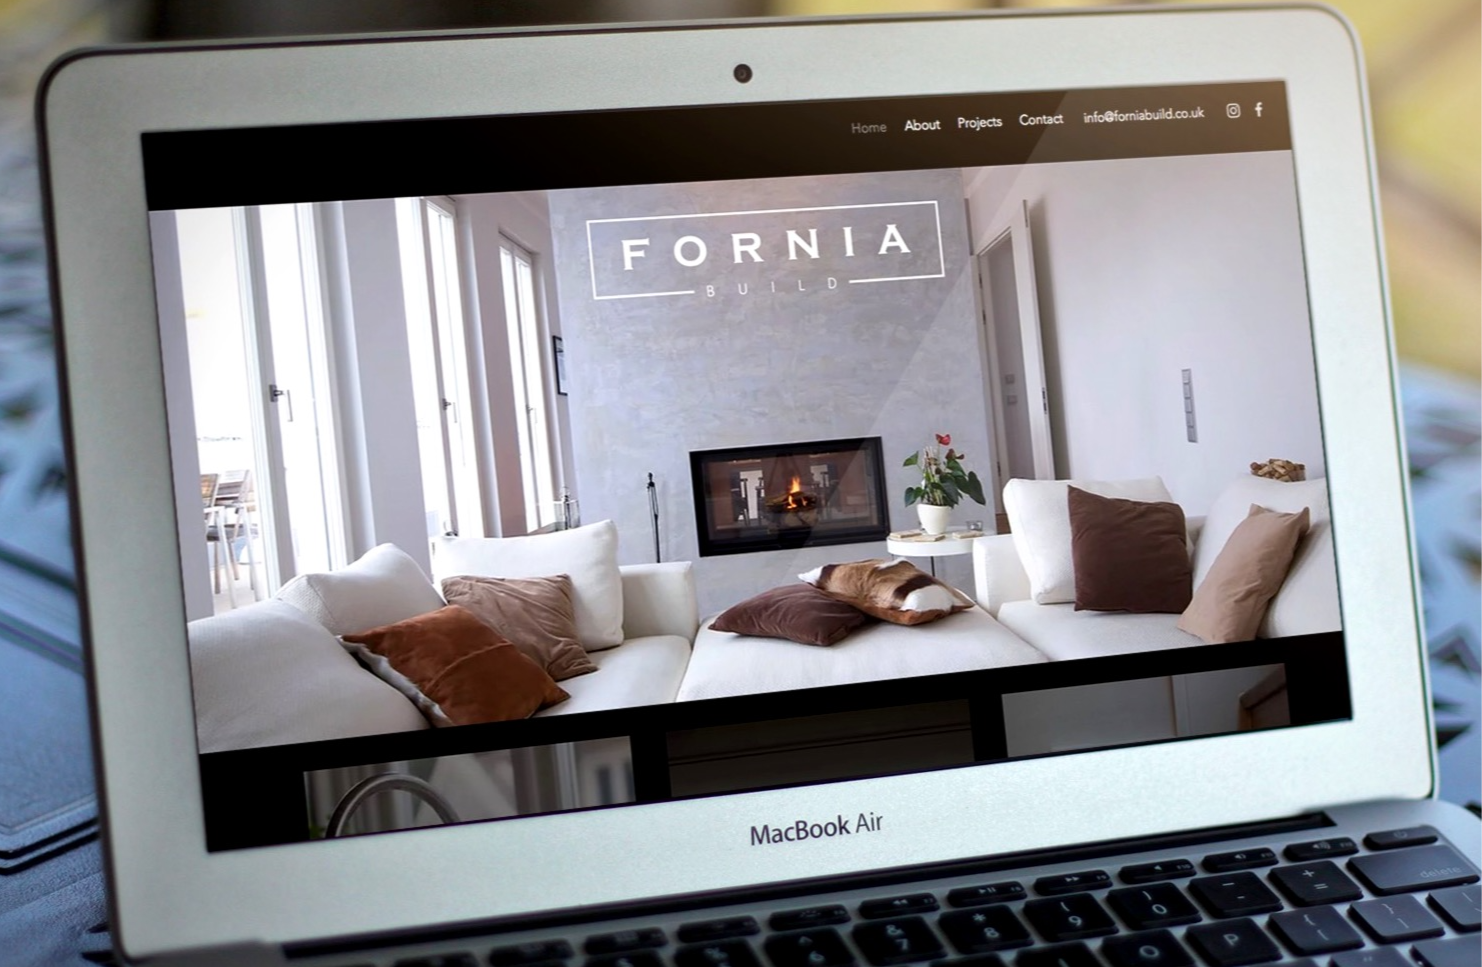 Copy of Fornia_build_website.png